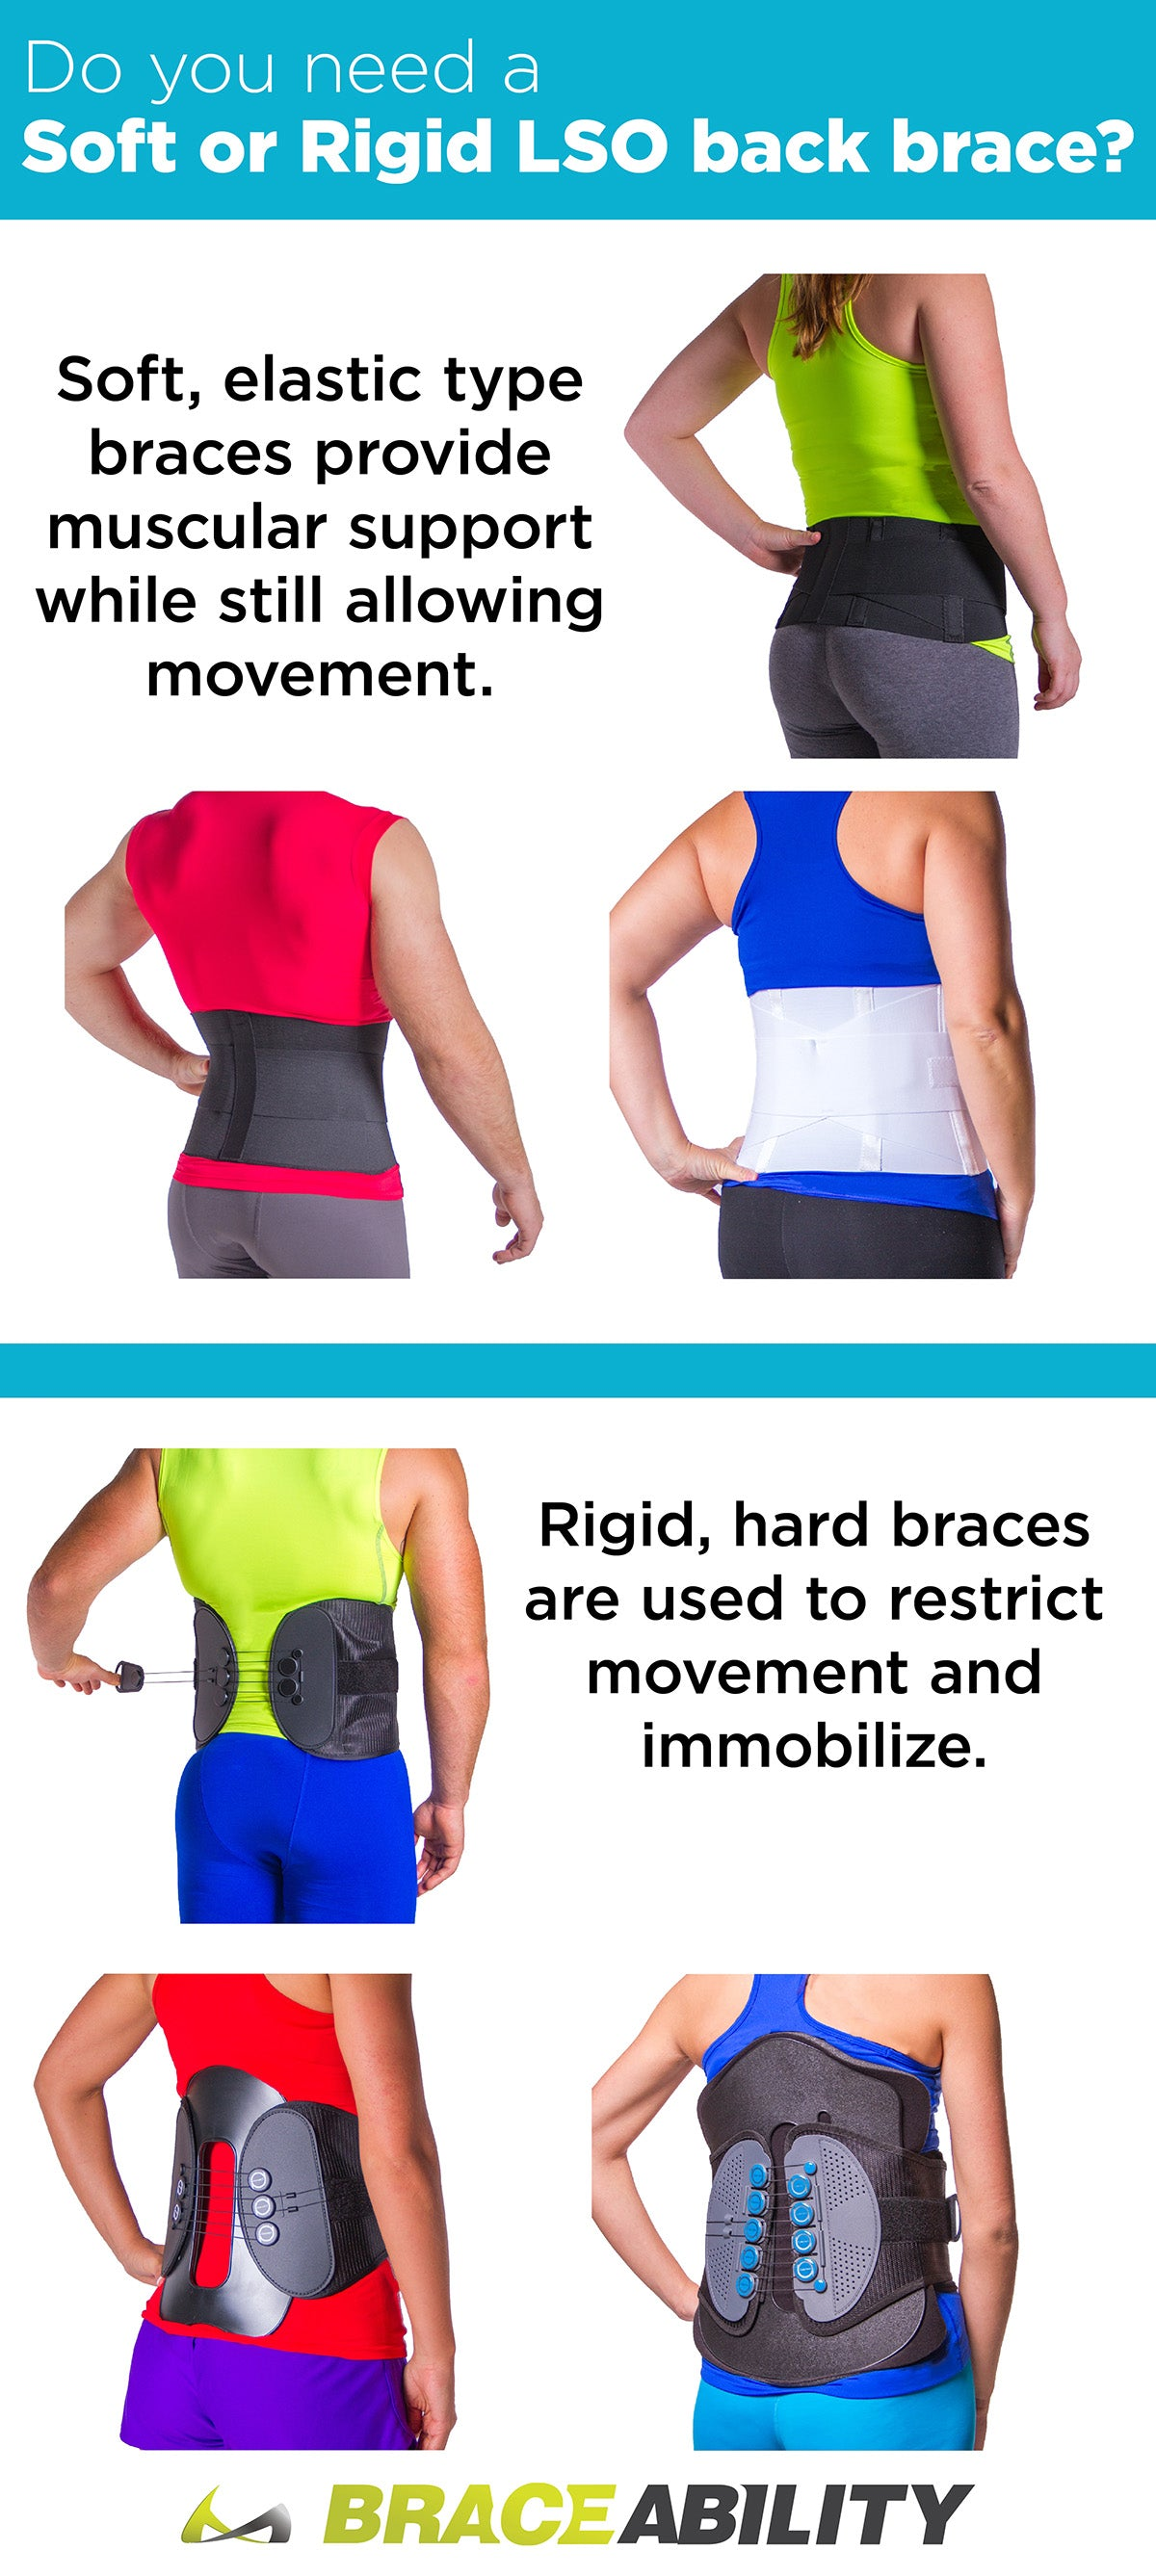 LSO Back Braces | Lumbar Sacral Orthosis for Lumbar Support